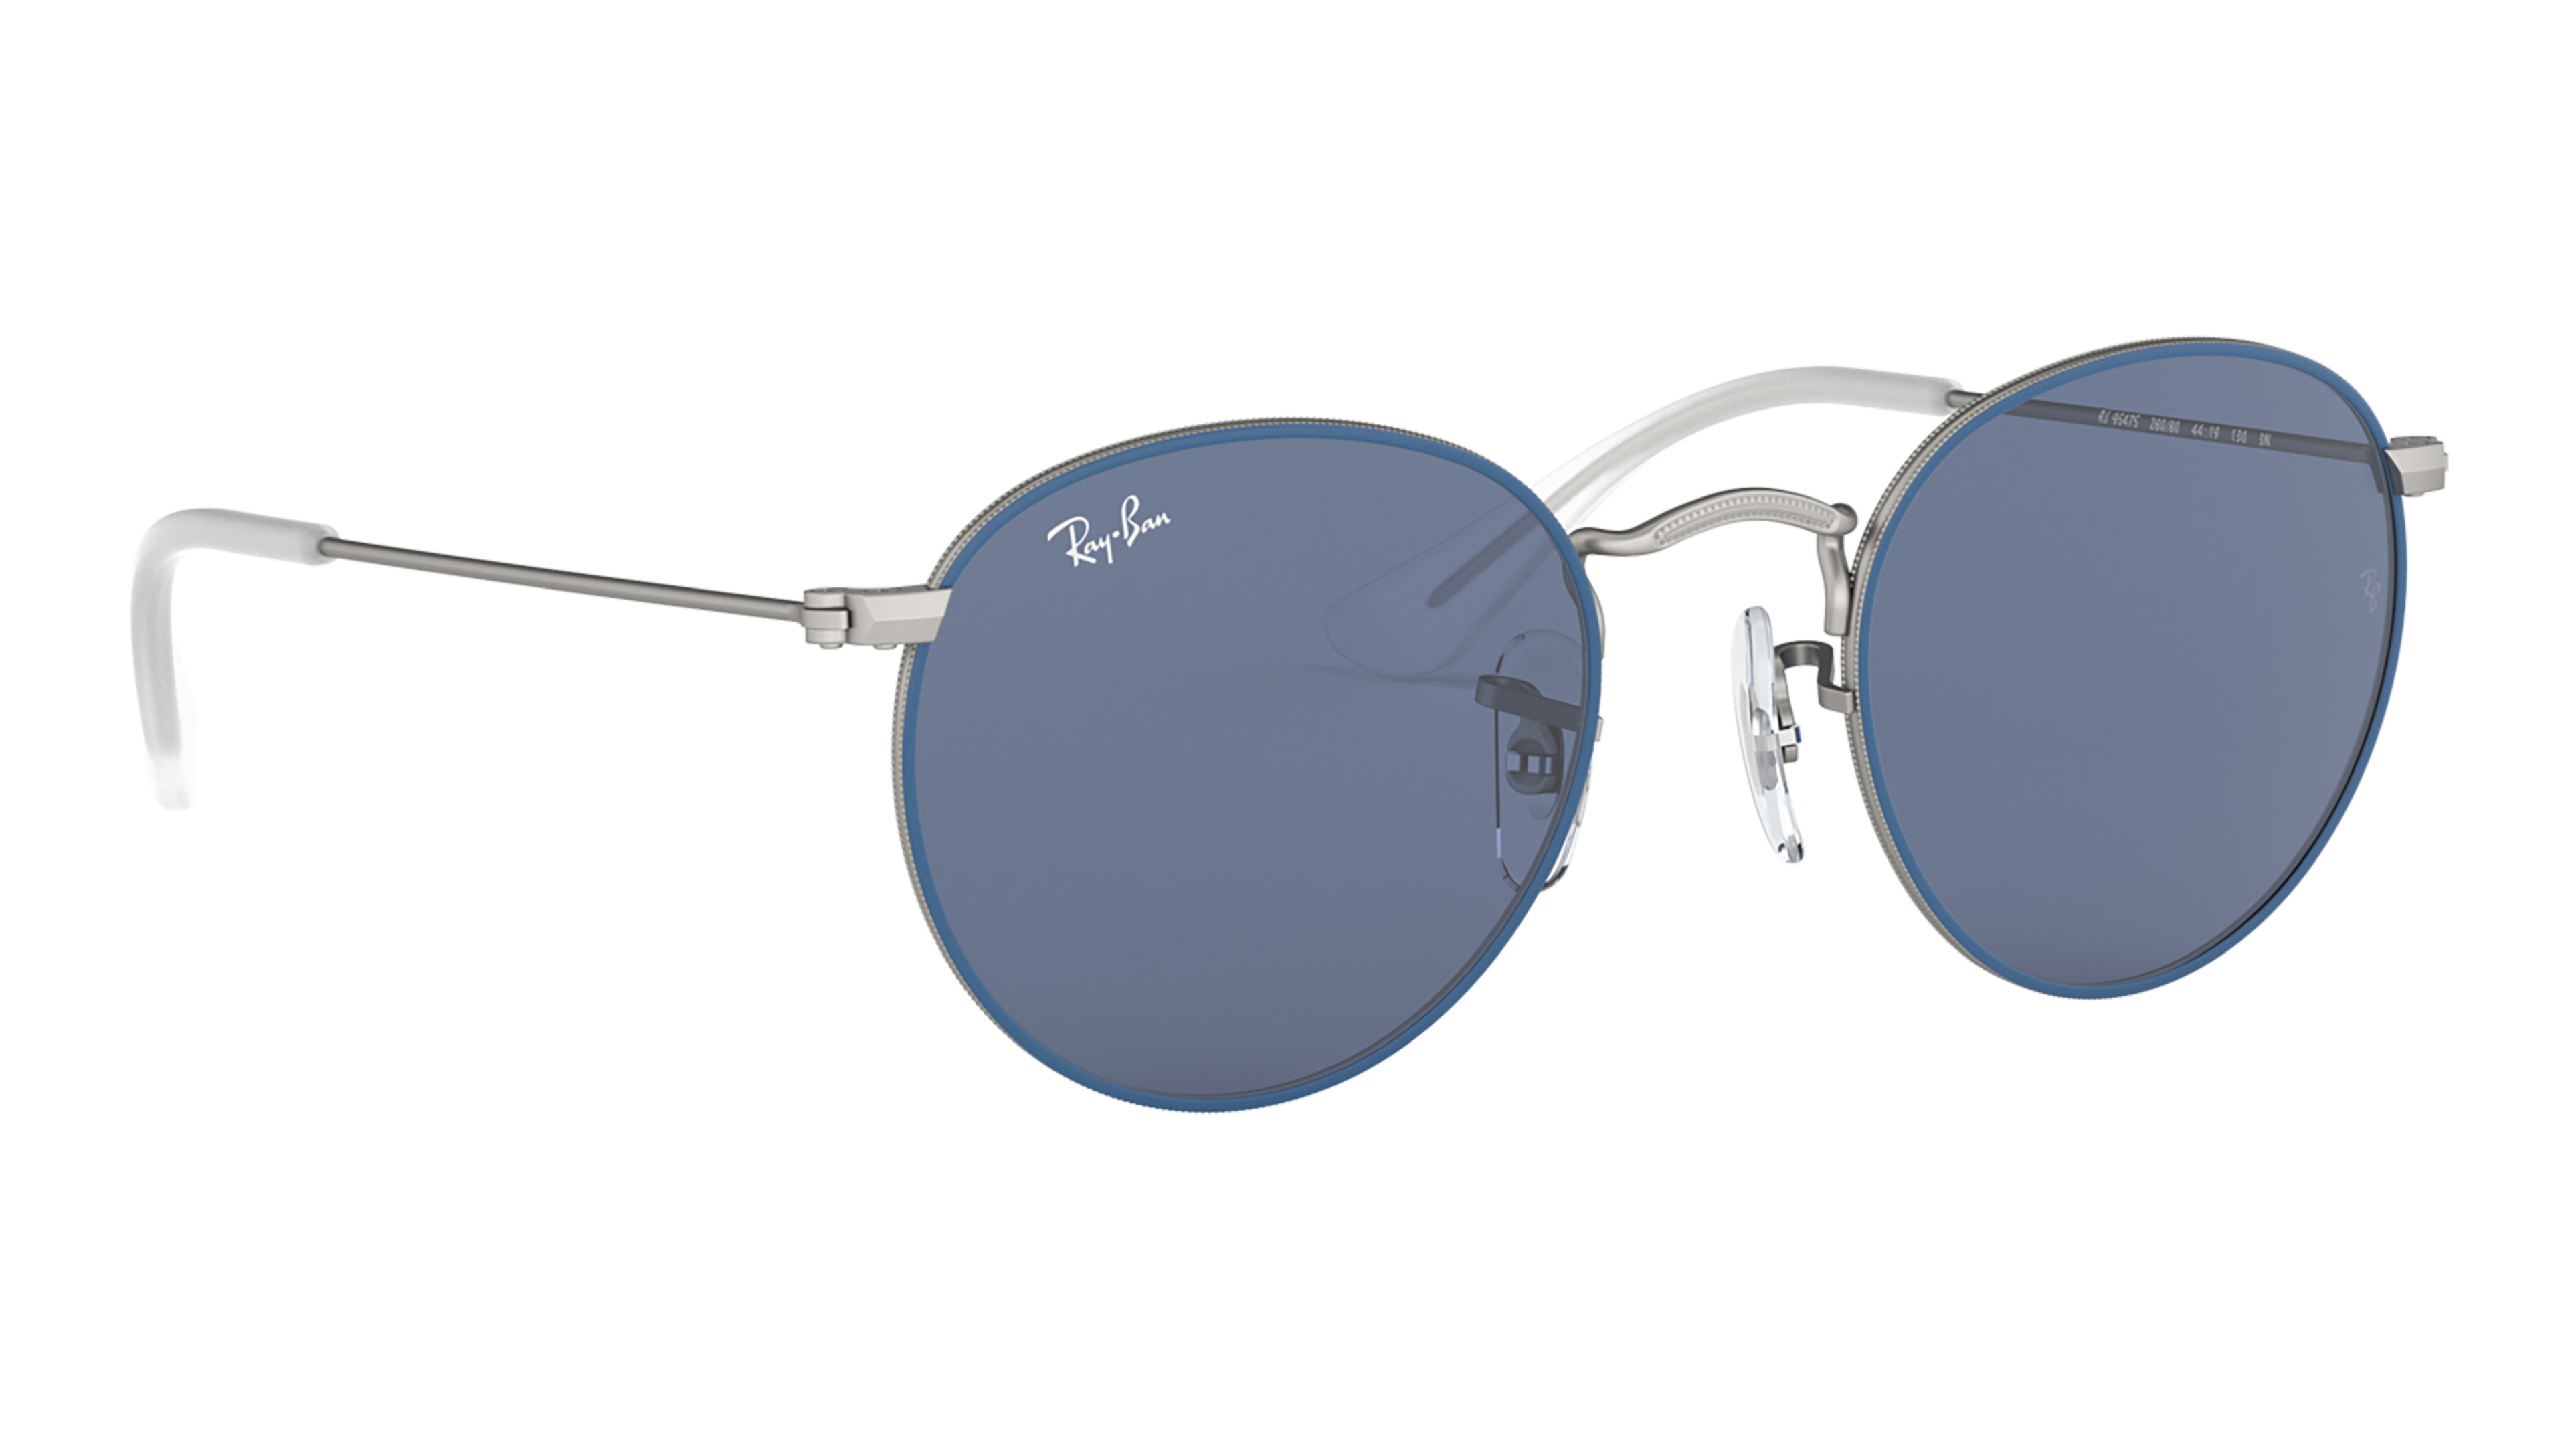 Angle_Right02 Ray-Ban Ray-Ban 0RJ9547S 280/80 44/19 Blauw, Zilver/Blauw